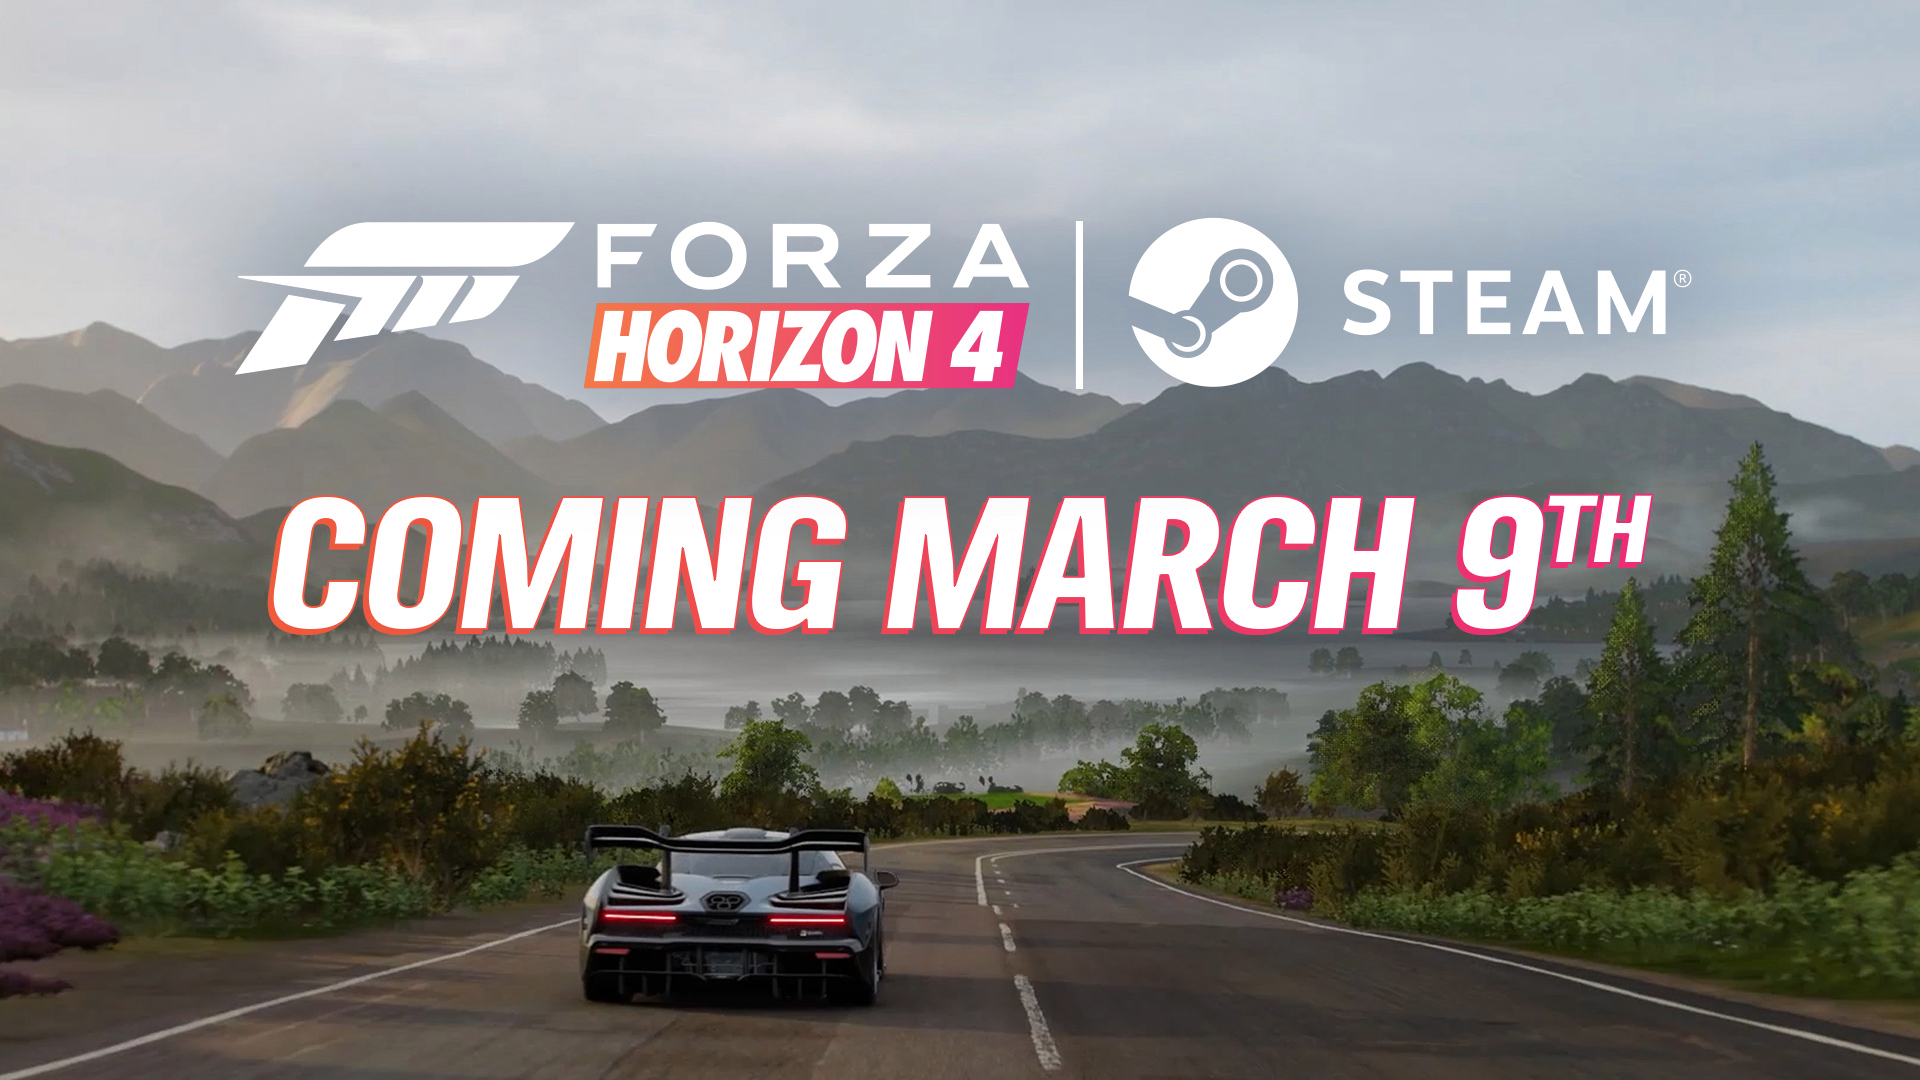 'Forza Horizon 4' is coming to Steam on March 9